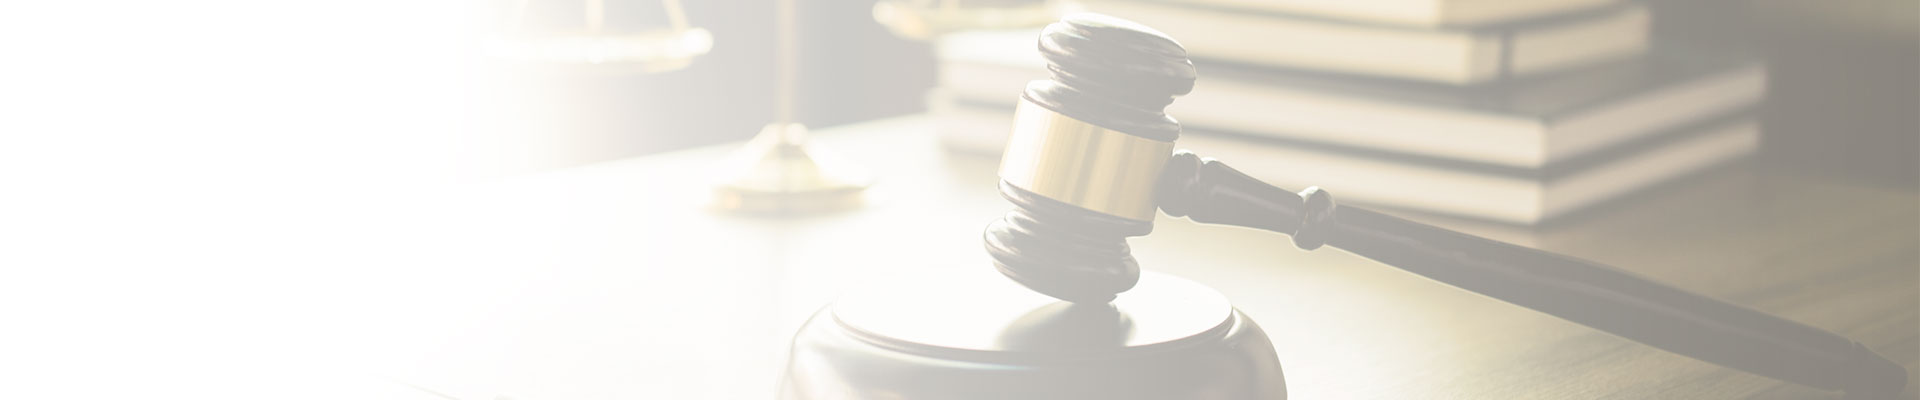 How law firms are looking beyond operational efficiency to gain strategic advantage